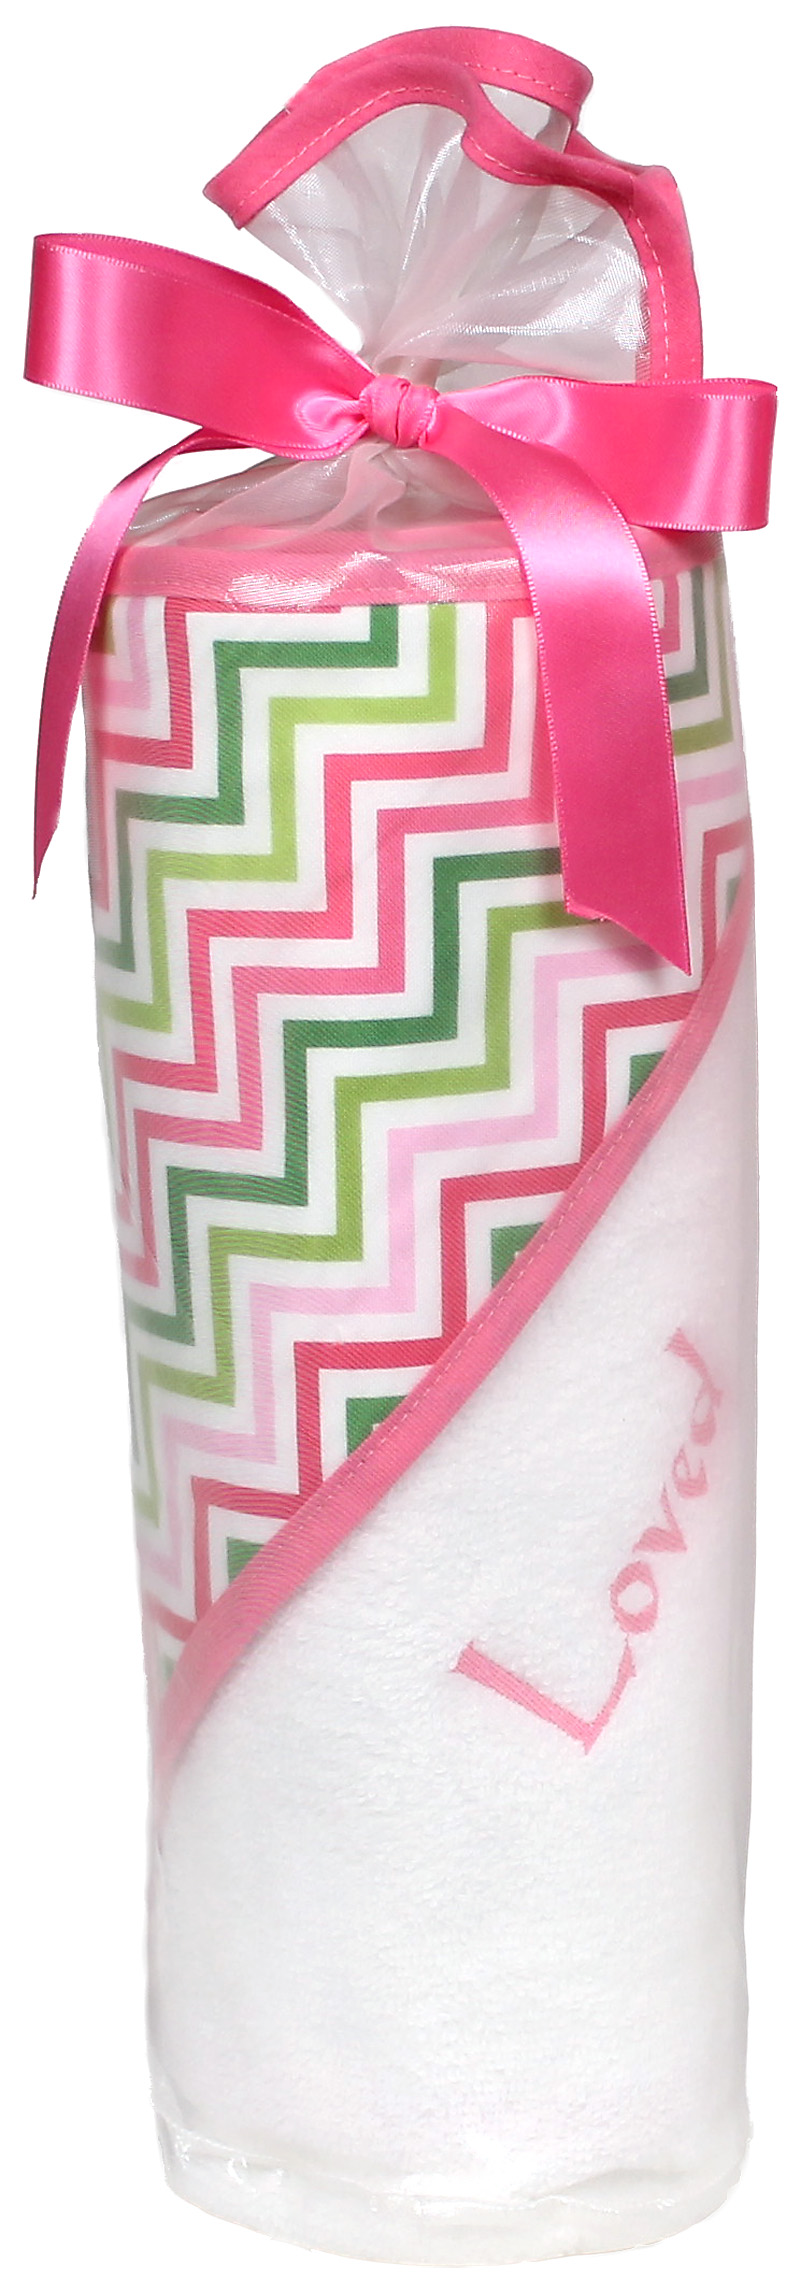 """Loved"" Multi Chevron Towel Girl Gift Set"